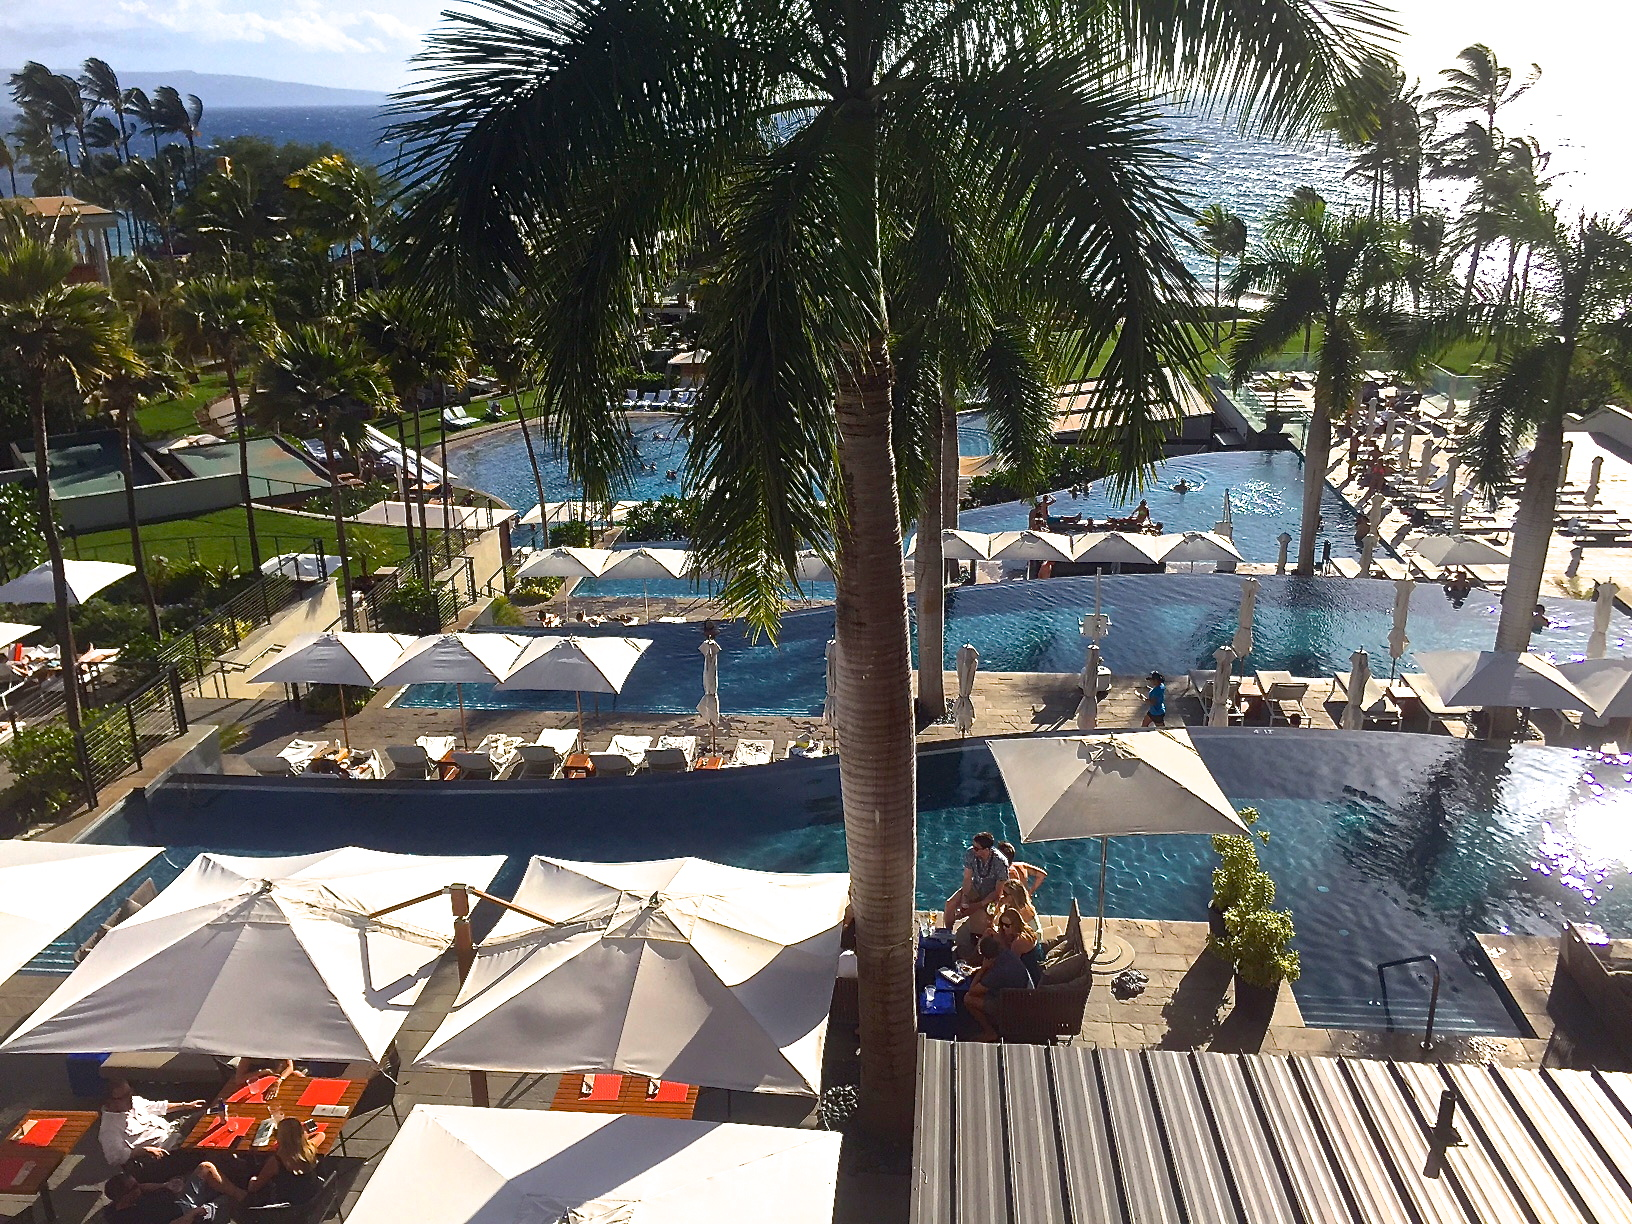 Our view.  Andaz Maui.